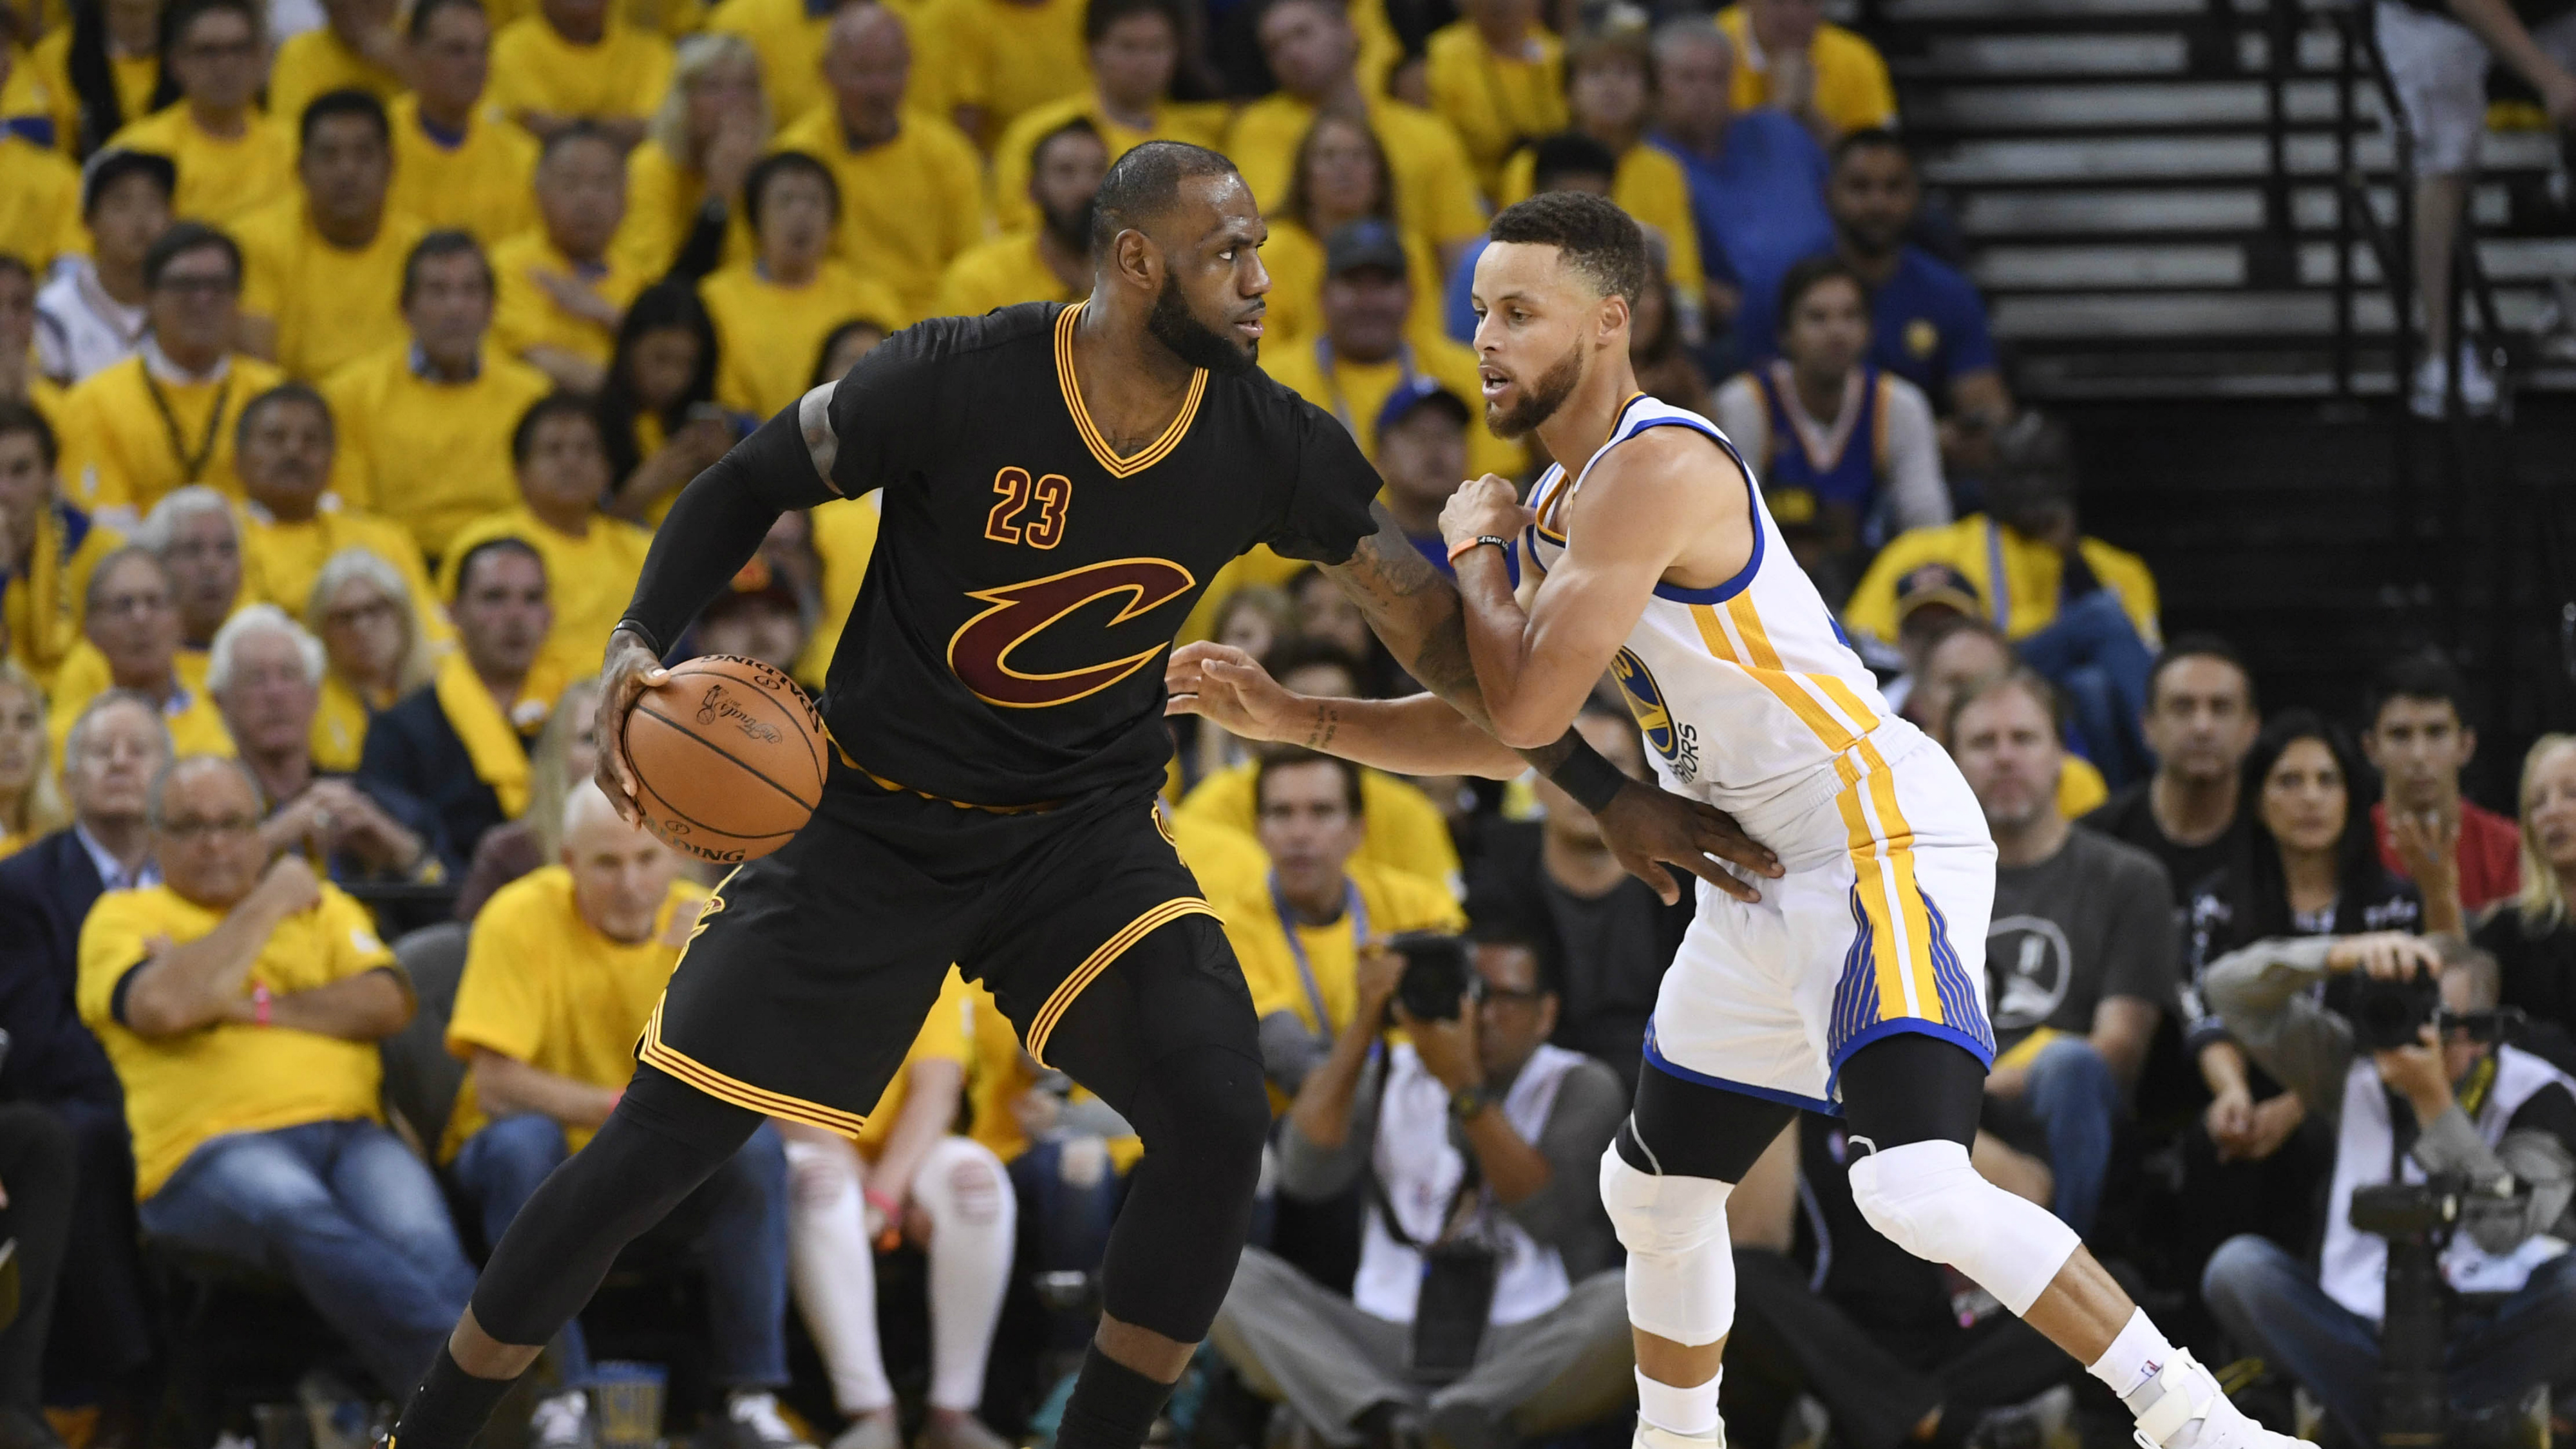 Lebron James and Stephen Curry on a basketball court.